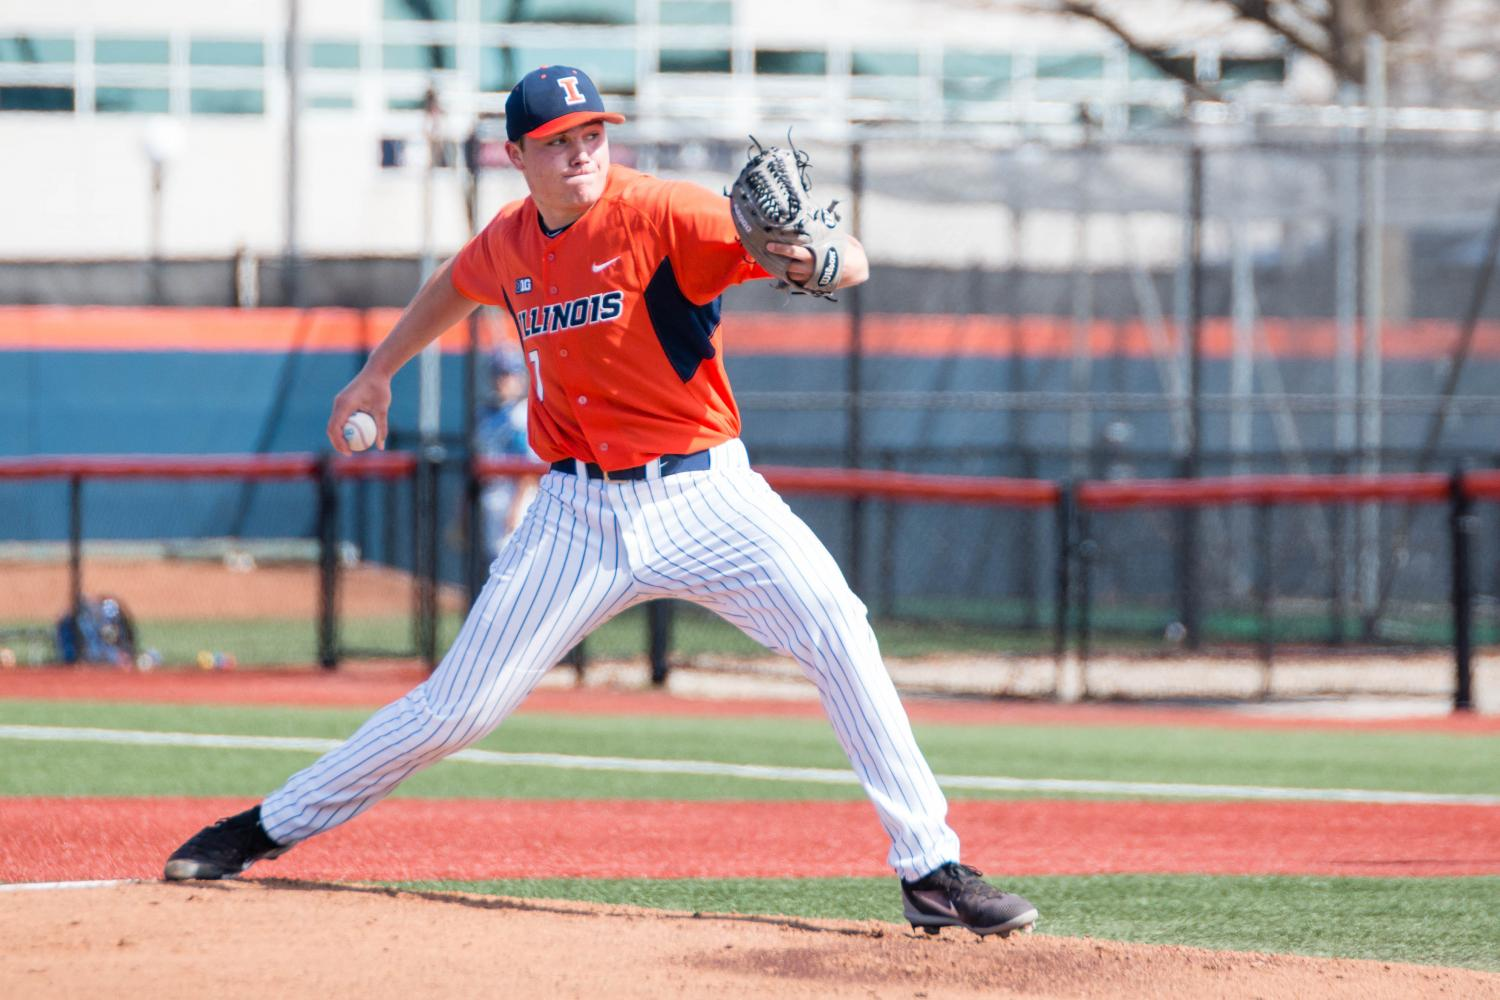 Illinois+starting+pitcher+Ty+Weber+delivers+a+pitch+against+Indiana+State+at+Illinois+Field+on+April+1.+Illinois+takes+on+Maryland+this+weekend+in+a+three-game+series.